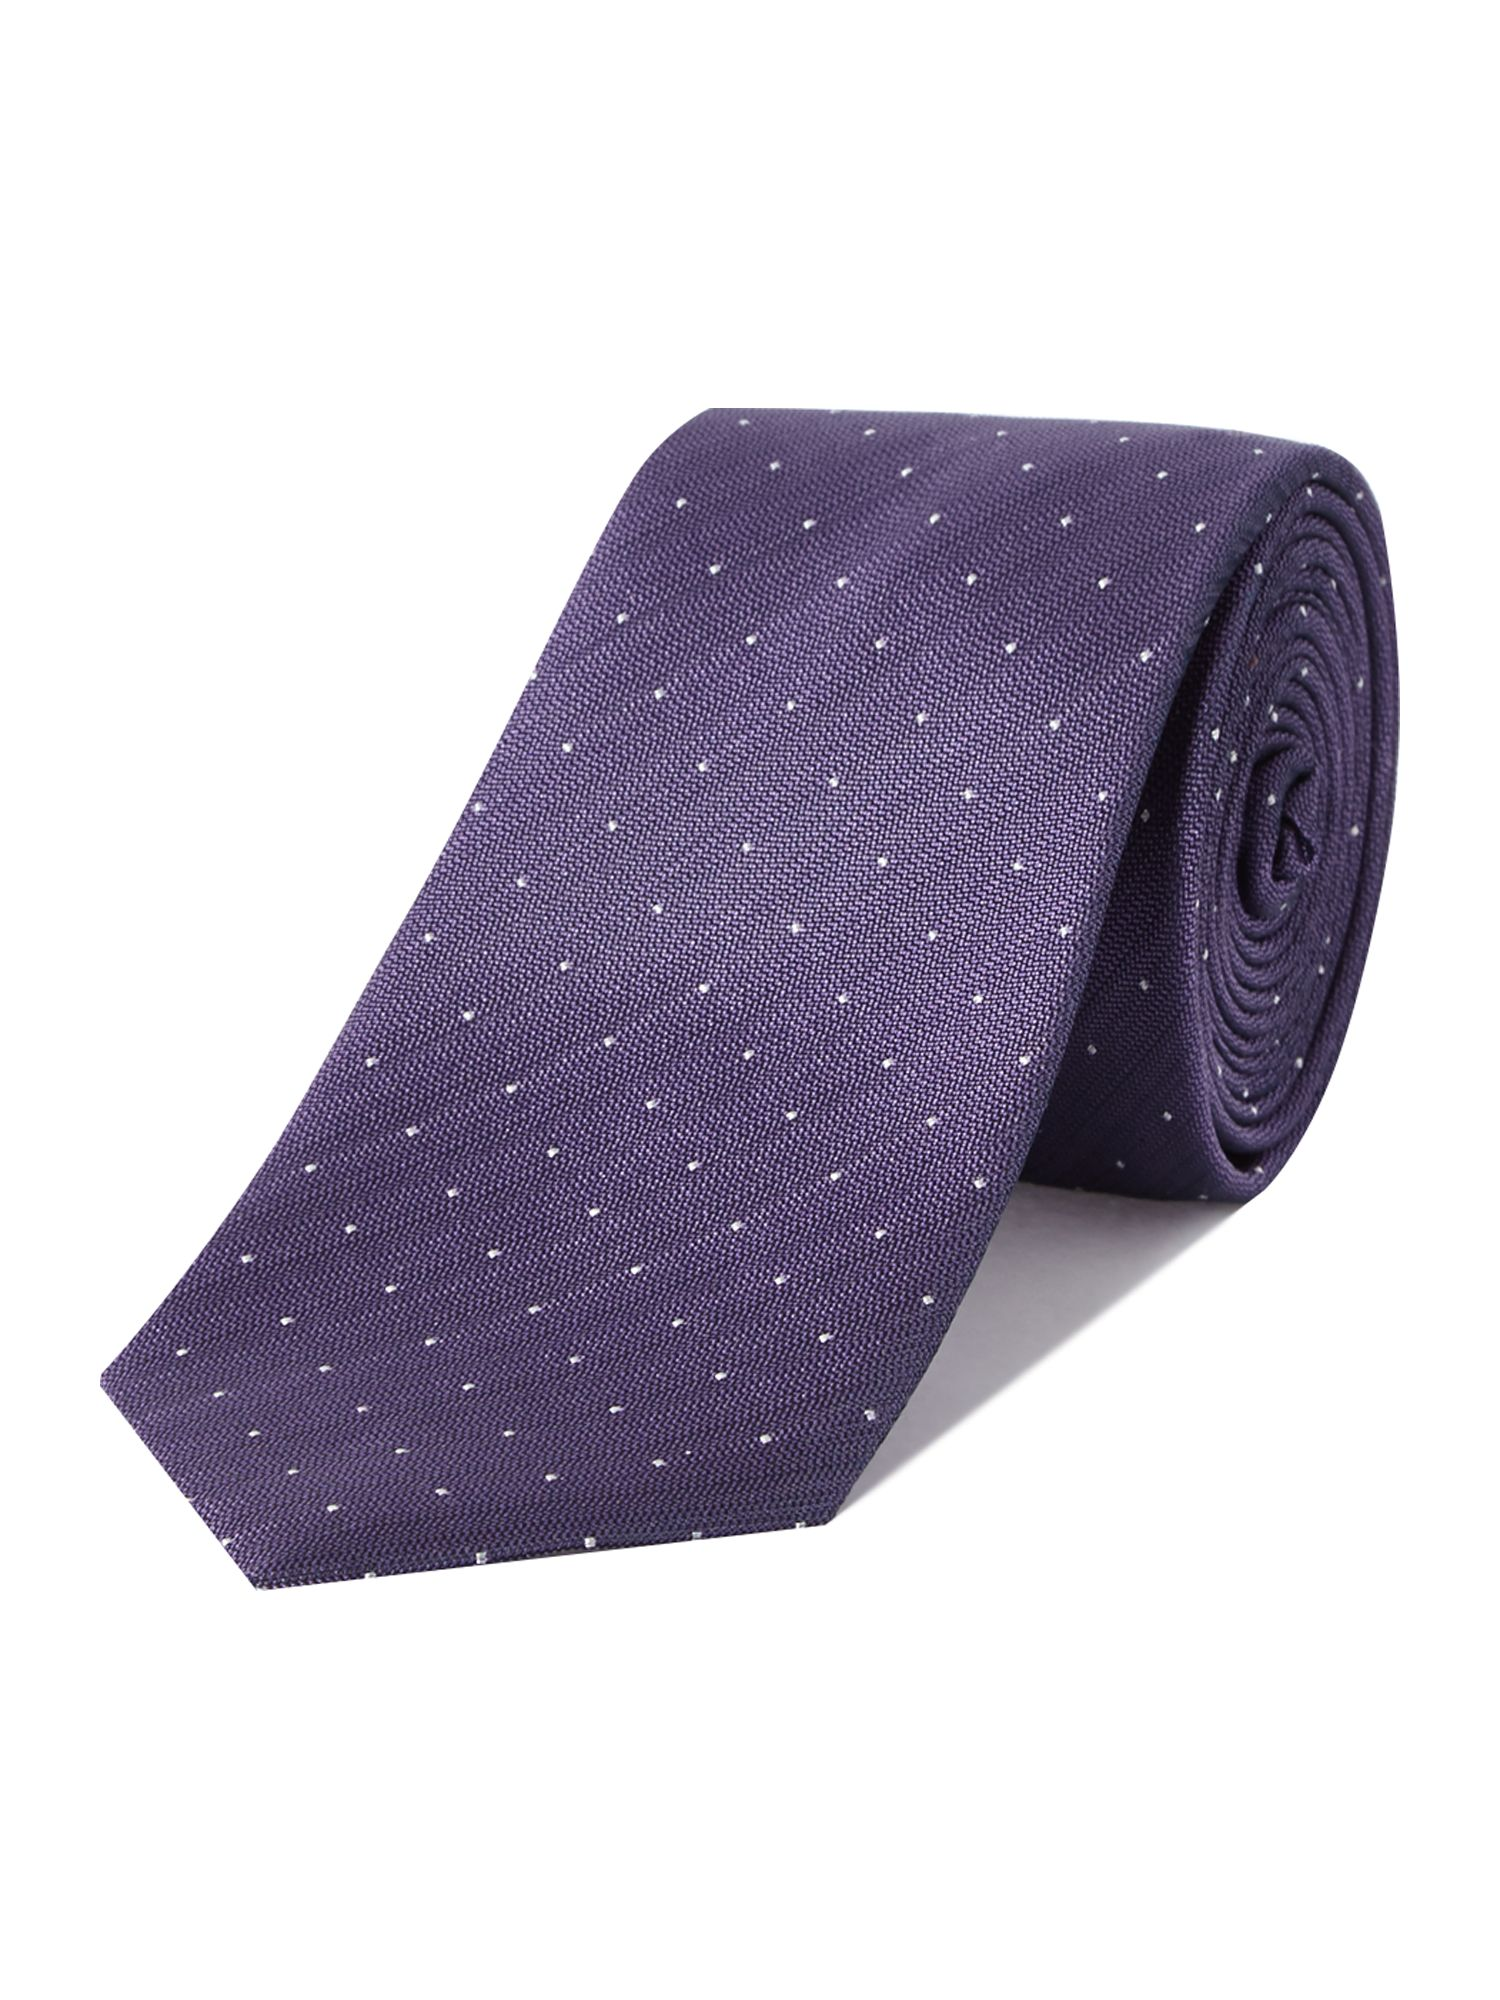 Plotter textured small dots silk tie